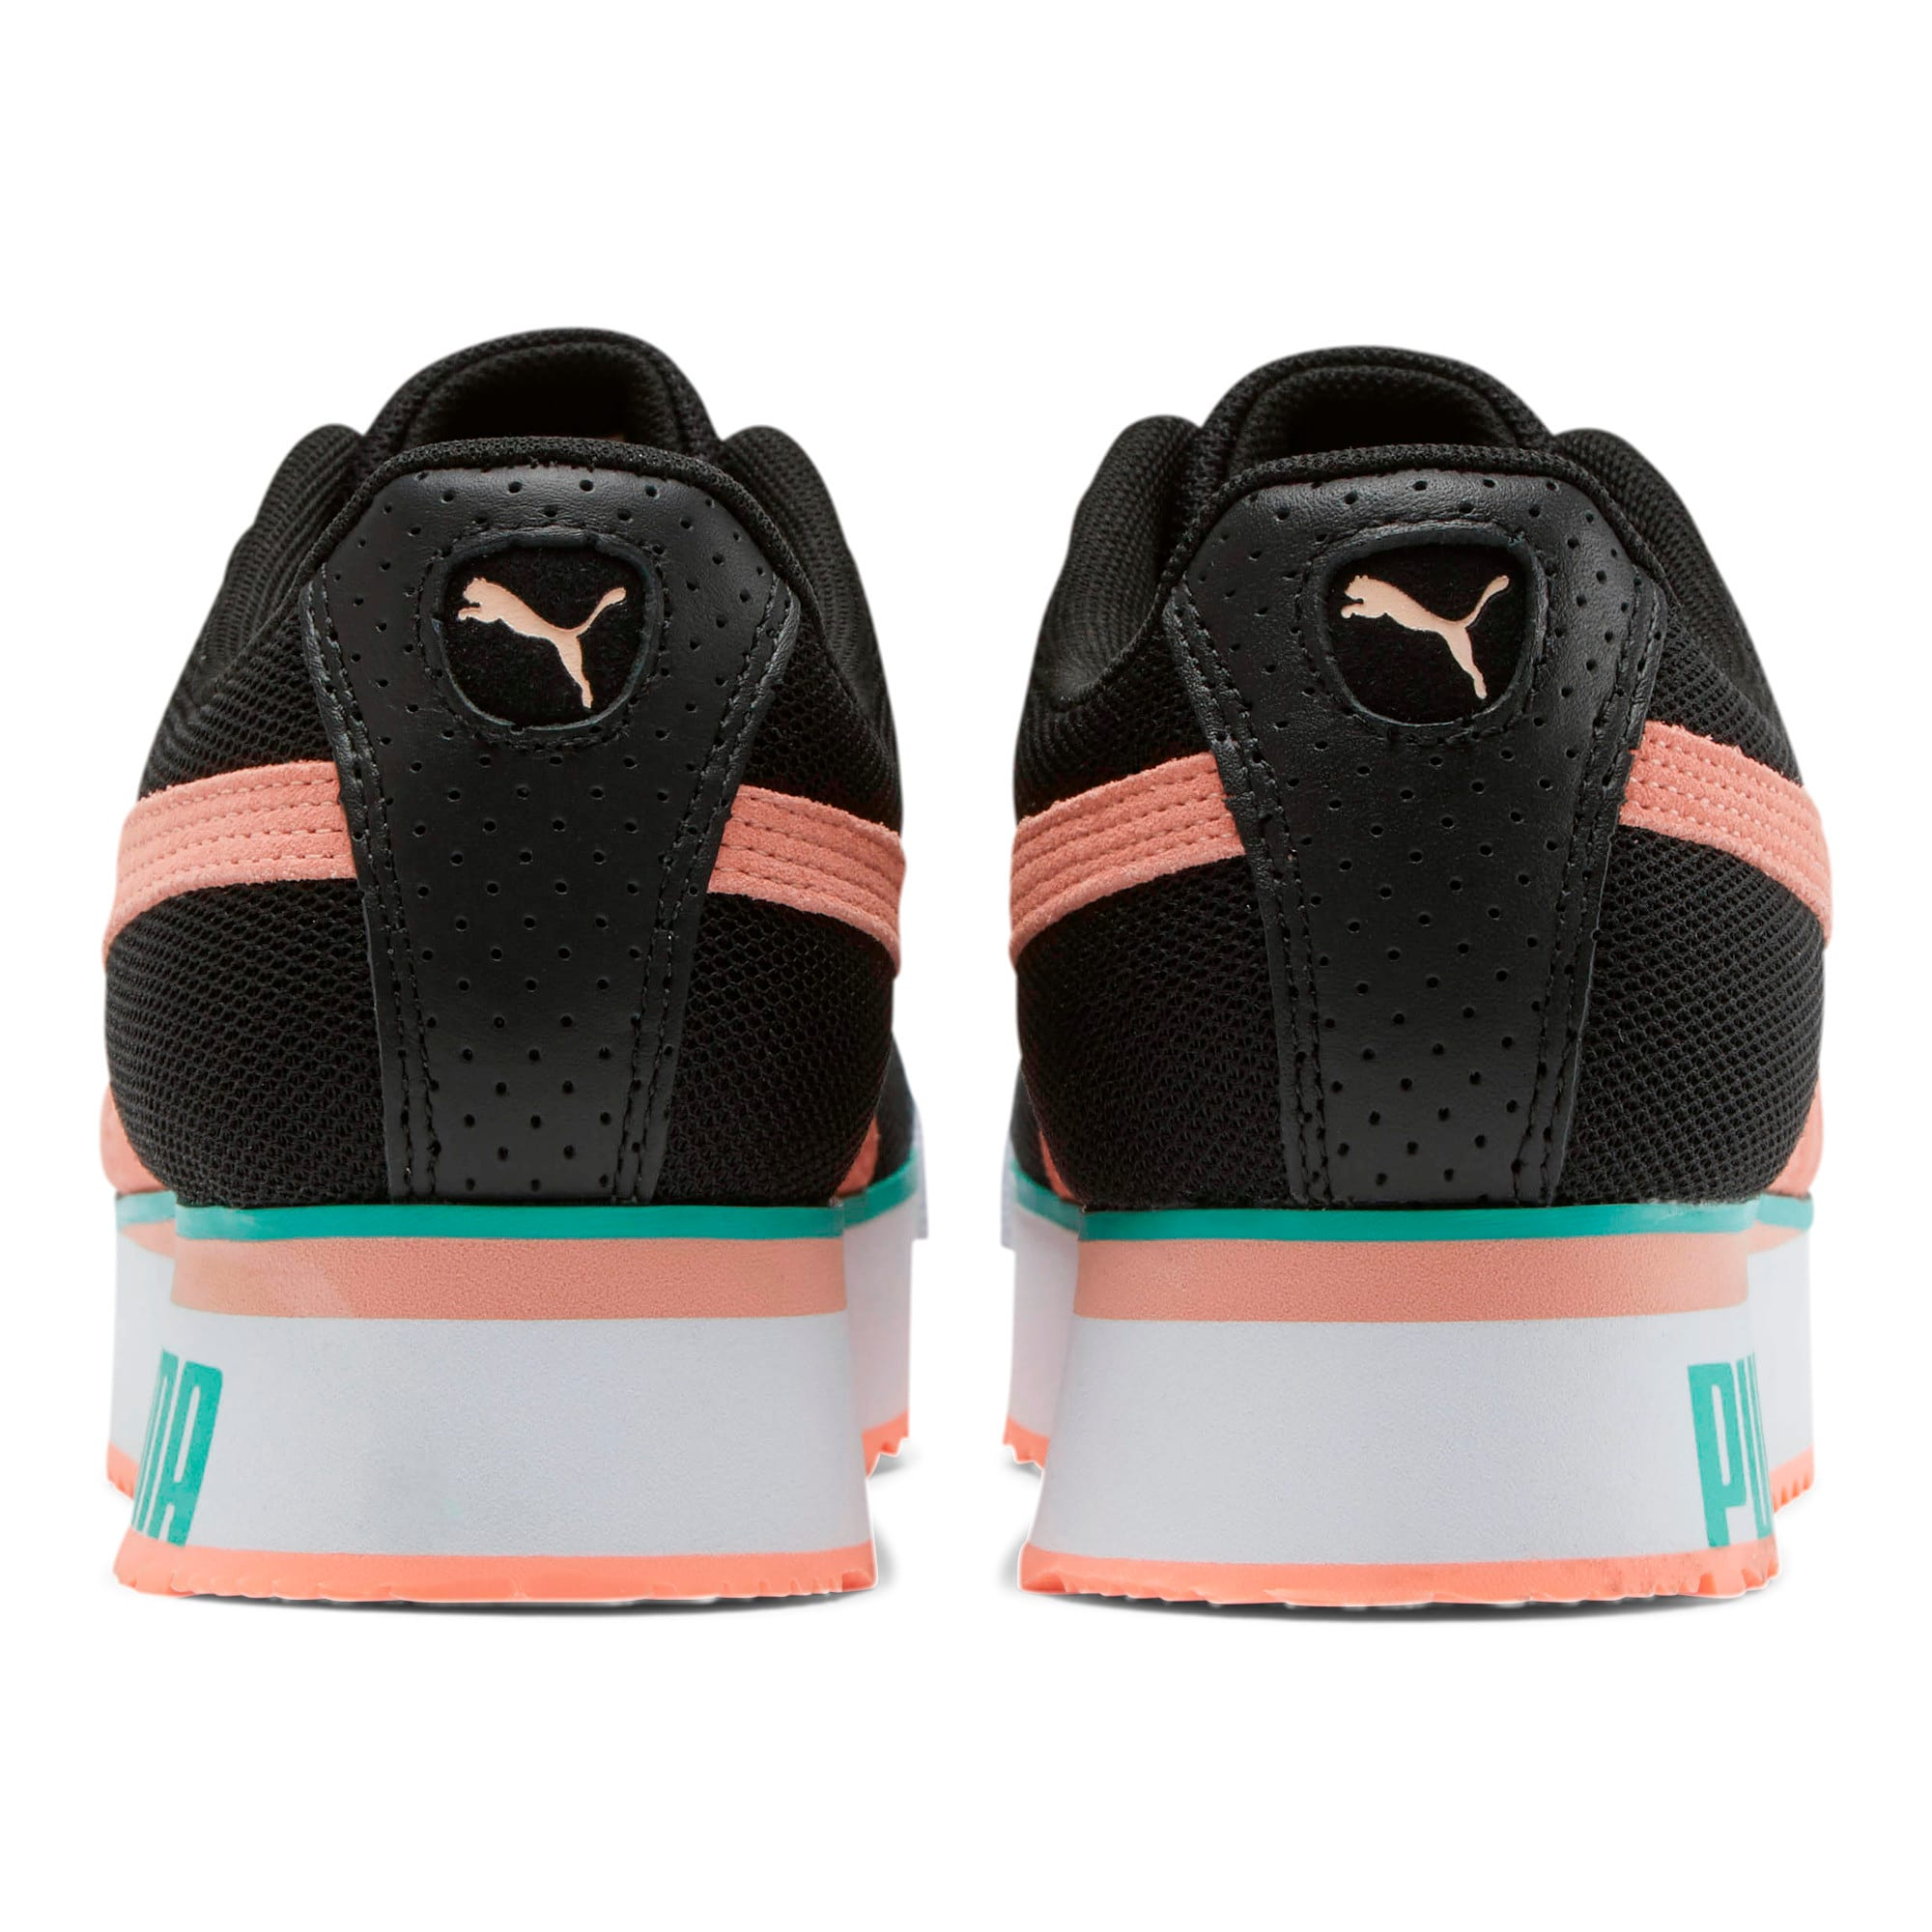 Roma Amor Mesh Mix Women's Sneakers, Black-Br Peach-Ble Turquoise, large